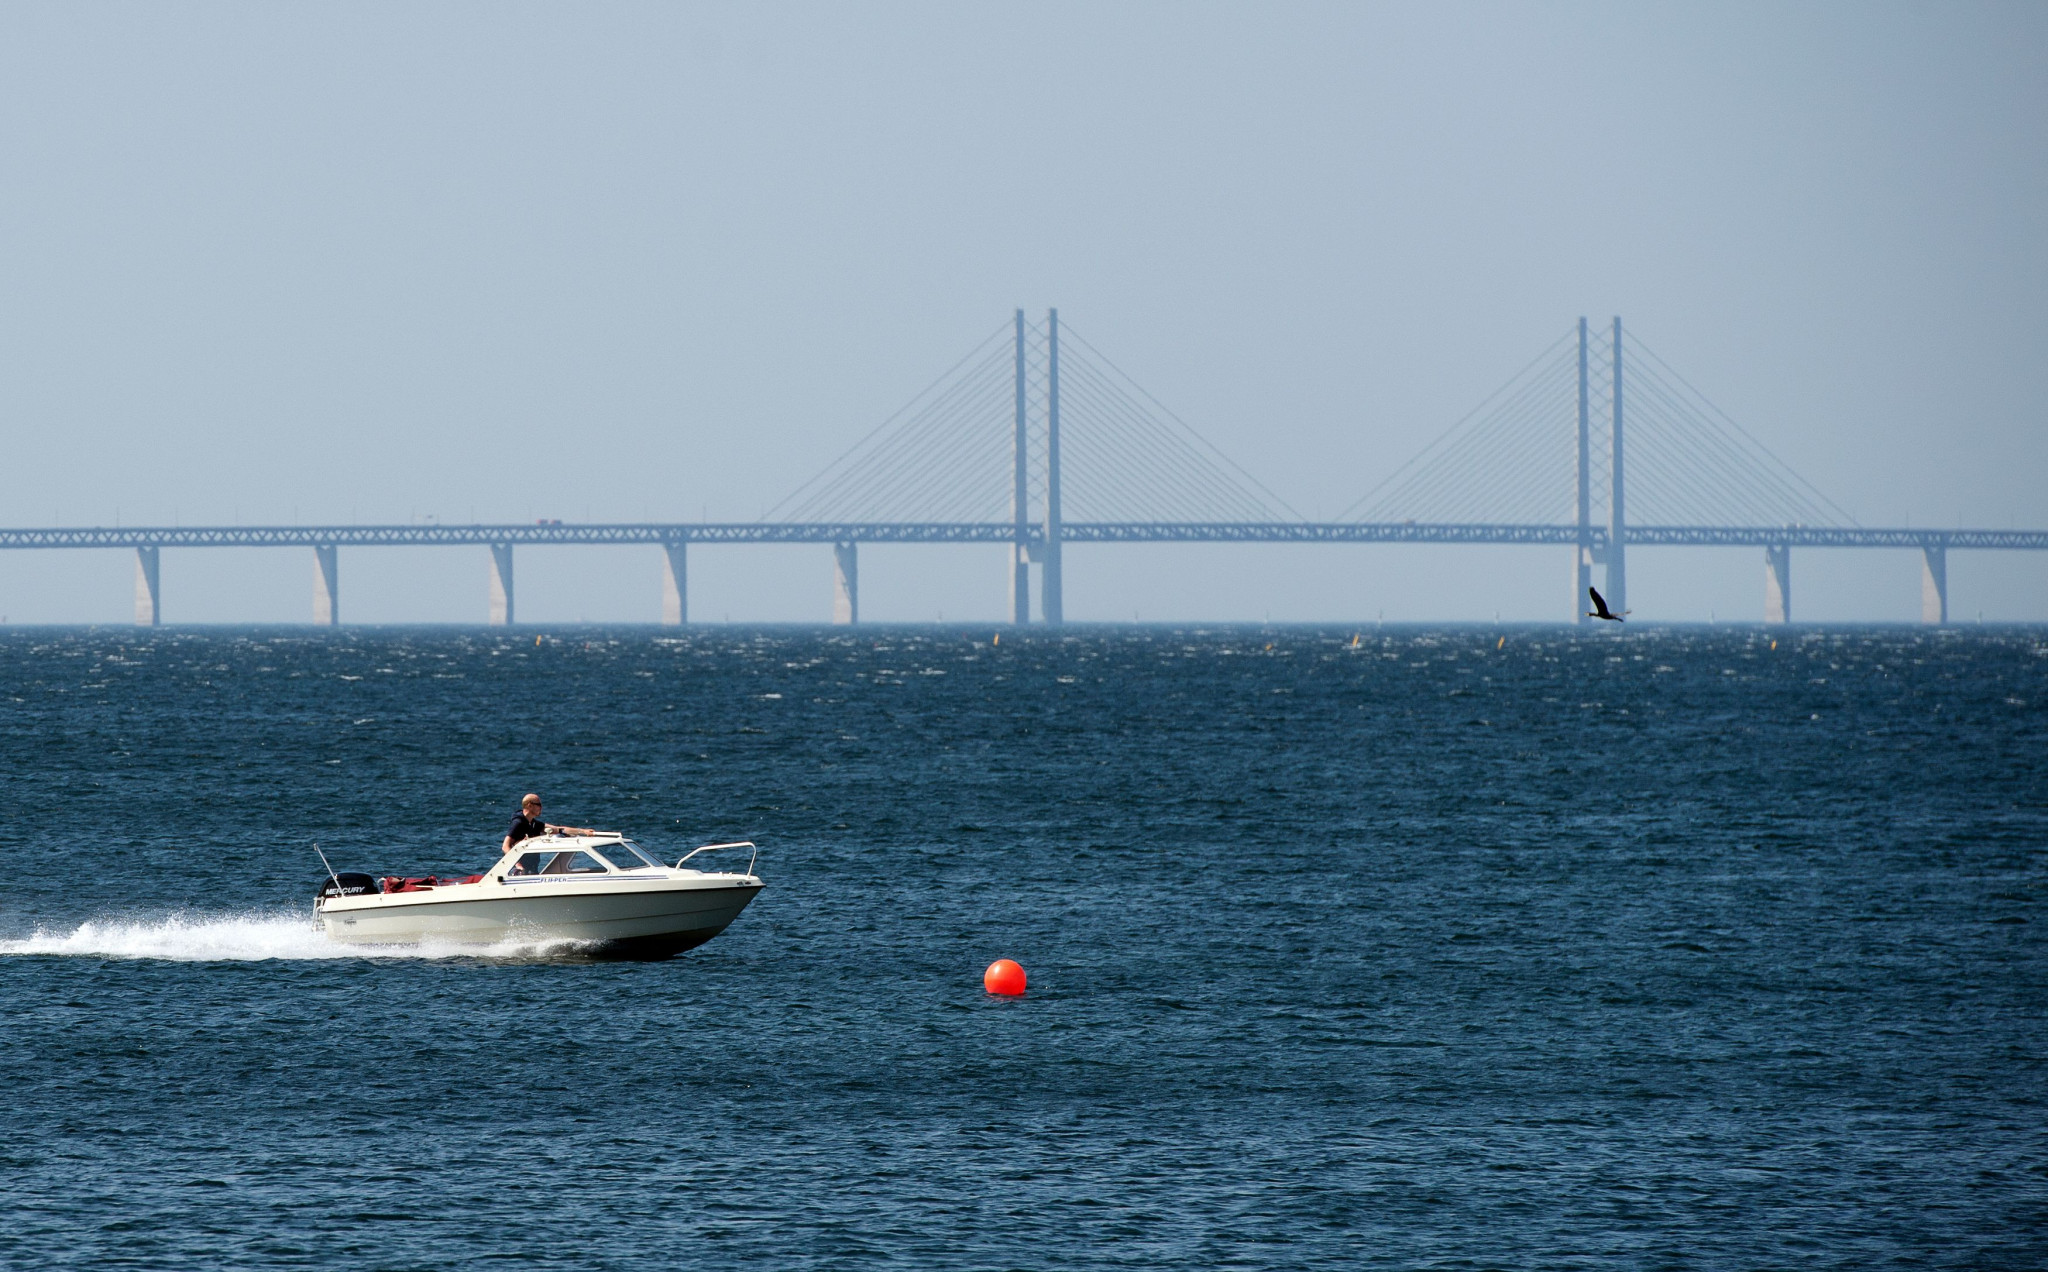 Sweden and Denamrk, on both sides of the Öresund Bridge, will both aim to benefit from the tournament ©WFDF